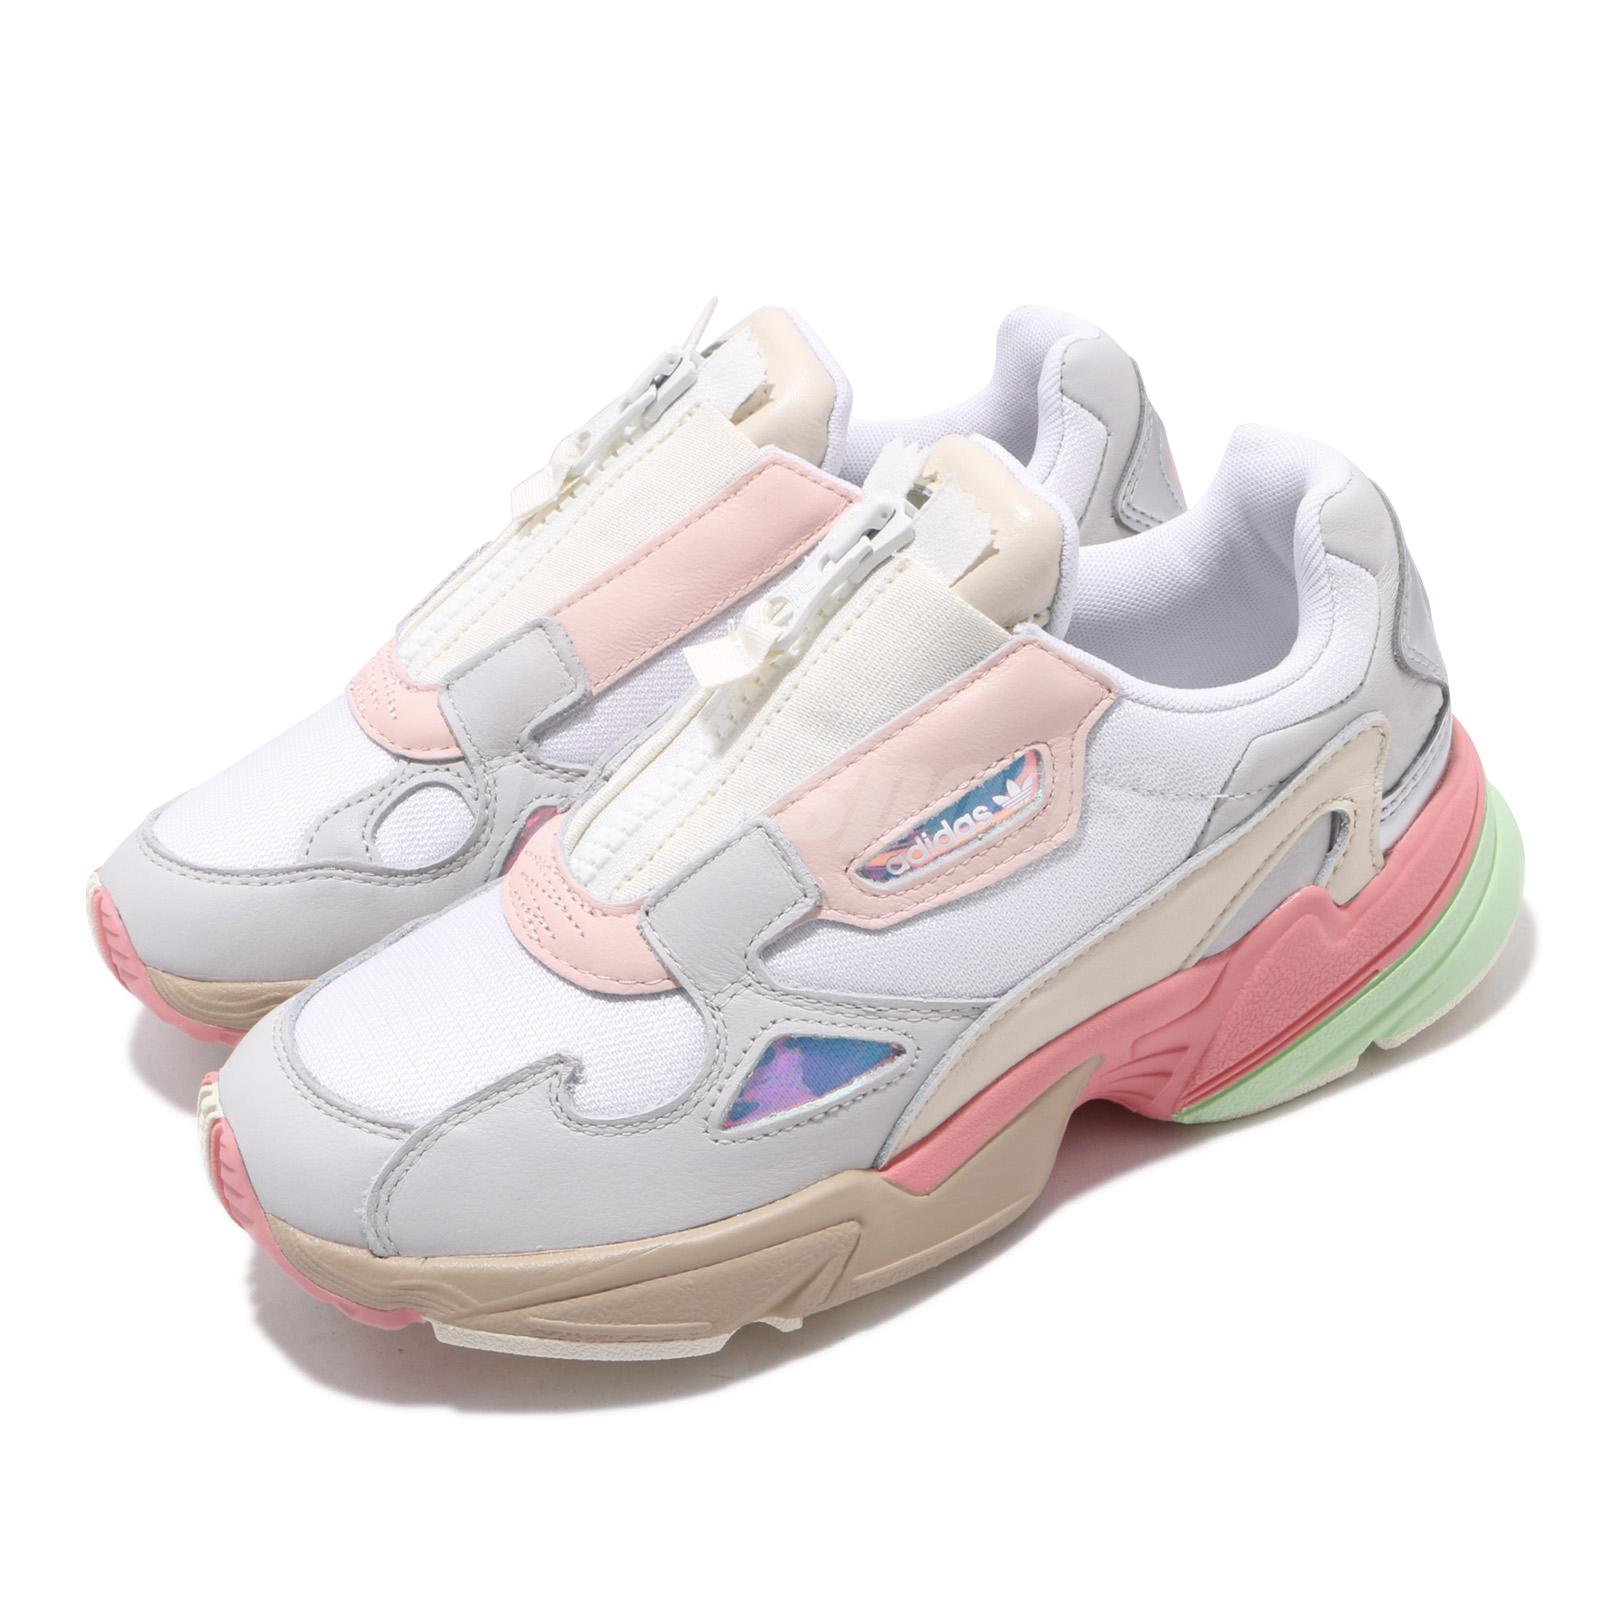 Details about adidas Originals Falcon Zip W White Grey Tactile Rose Pink  Women Shoes EG6740